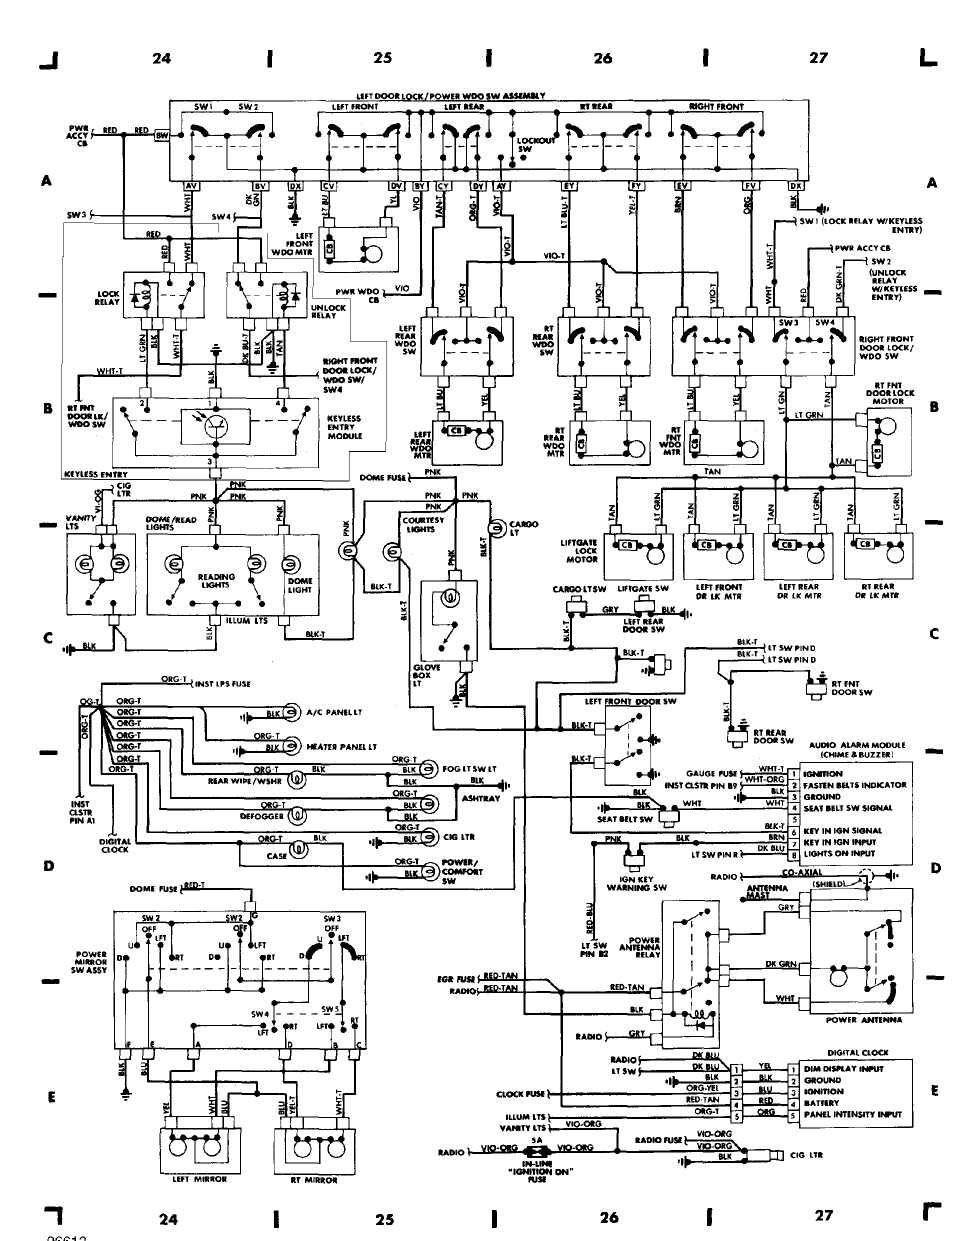 wiring_diagrams_html_61f5e0ad wiring diagrams 1984 1991 jeep cherokee (xj) jeep fuse box diagram 2000 jeep grand cherokee laredo at aneh.co